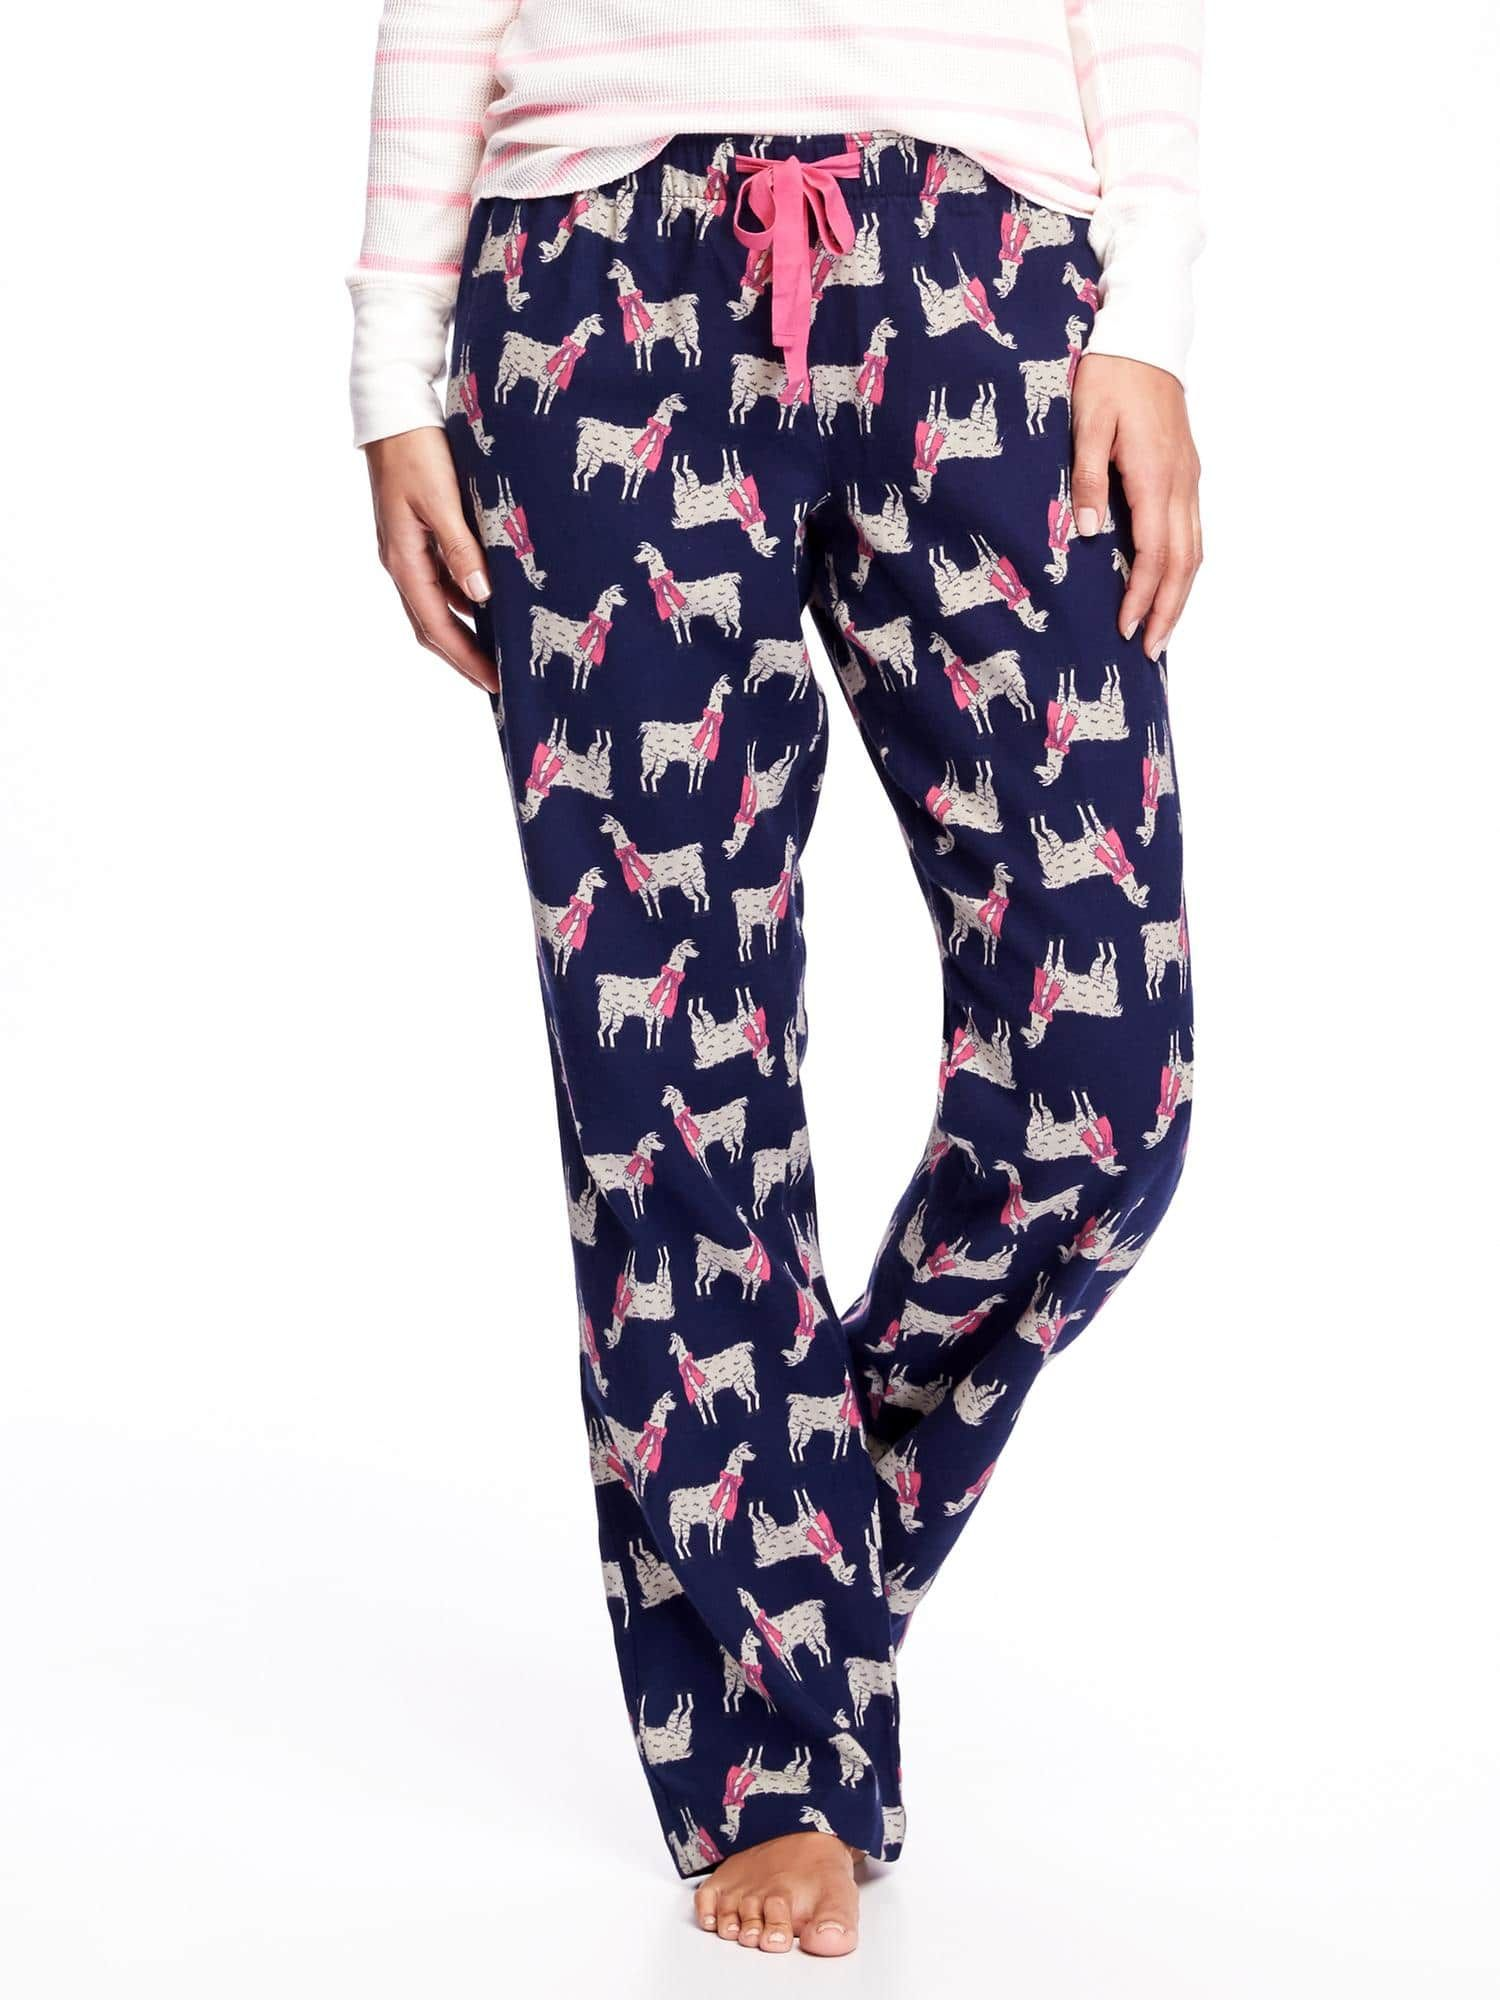 Old Navy Sleep Pants Llama Or Whatever Color Large 14